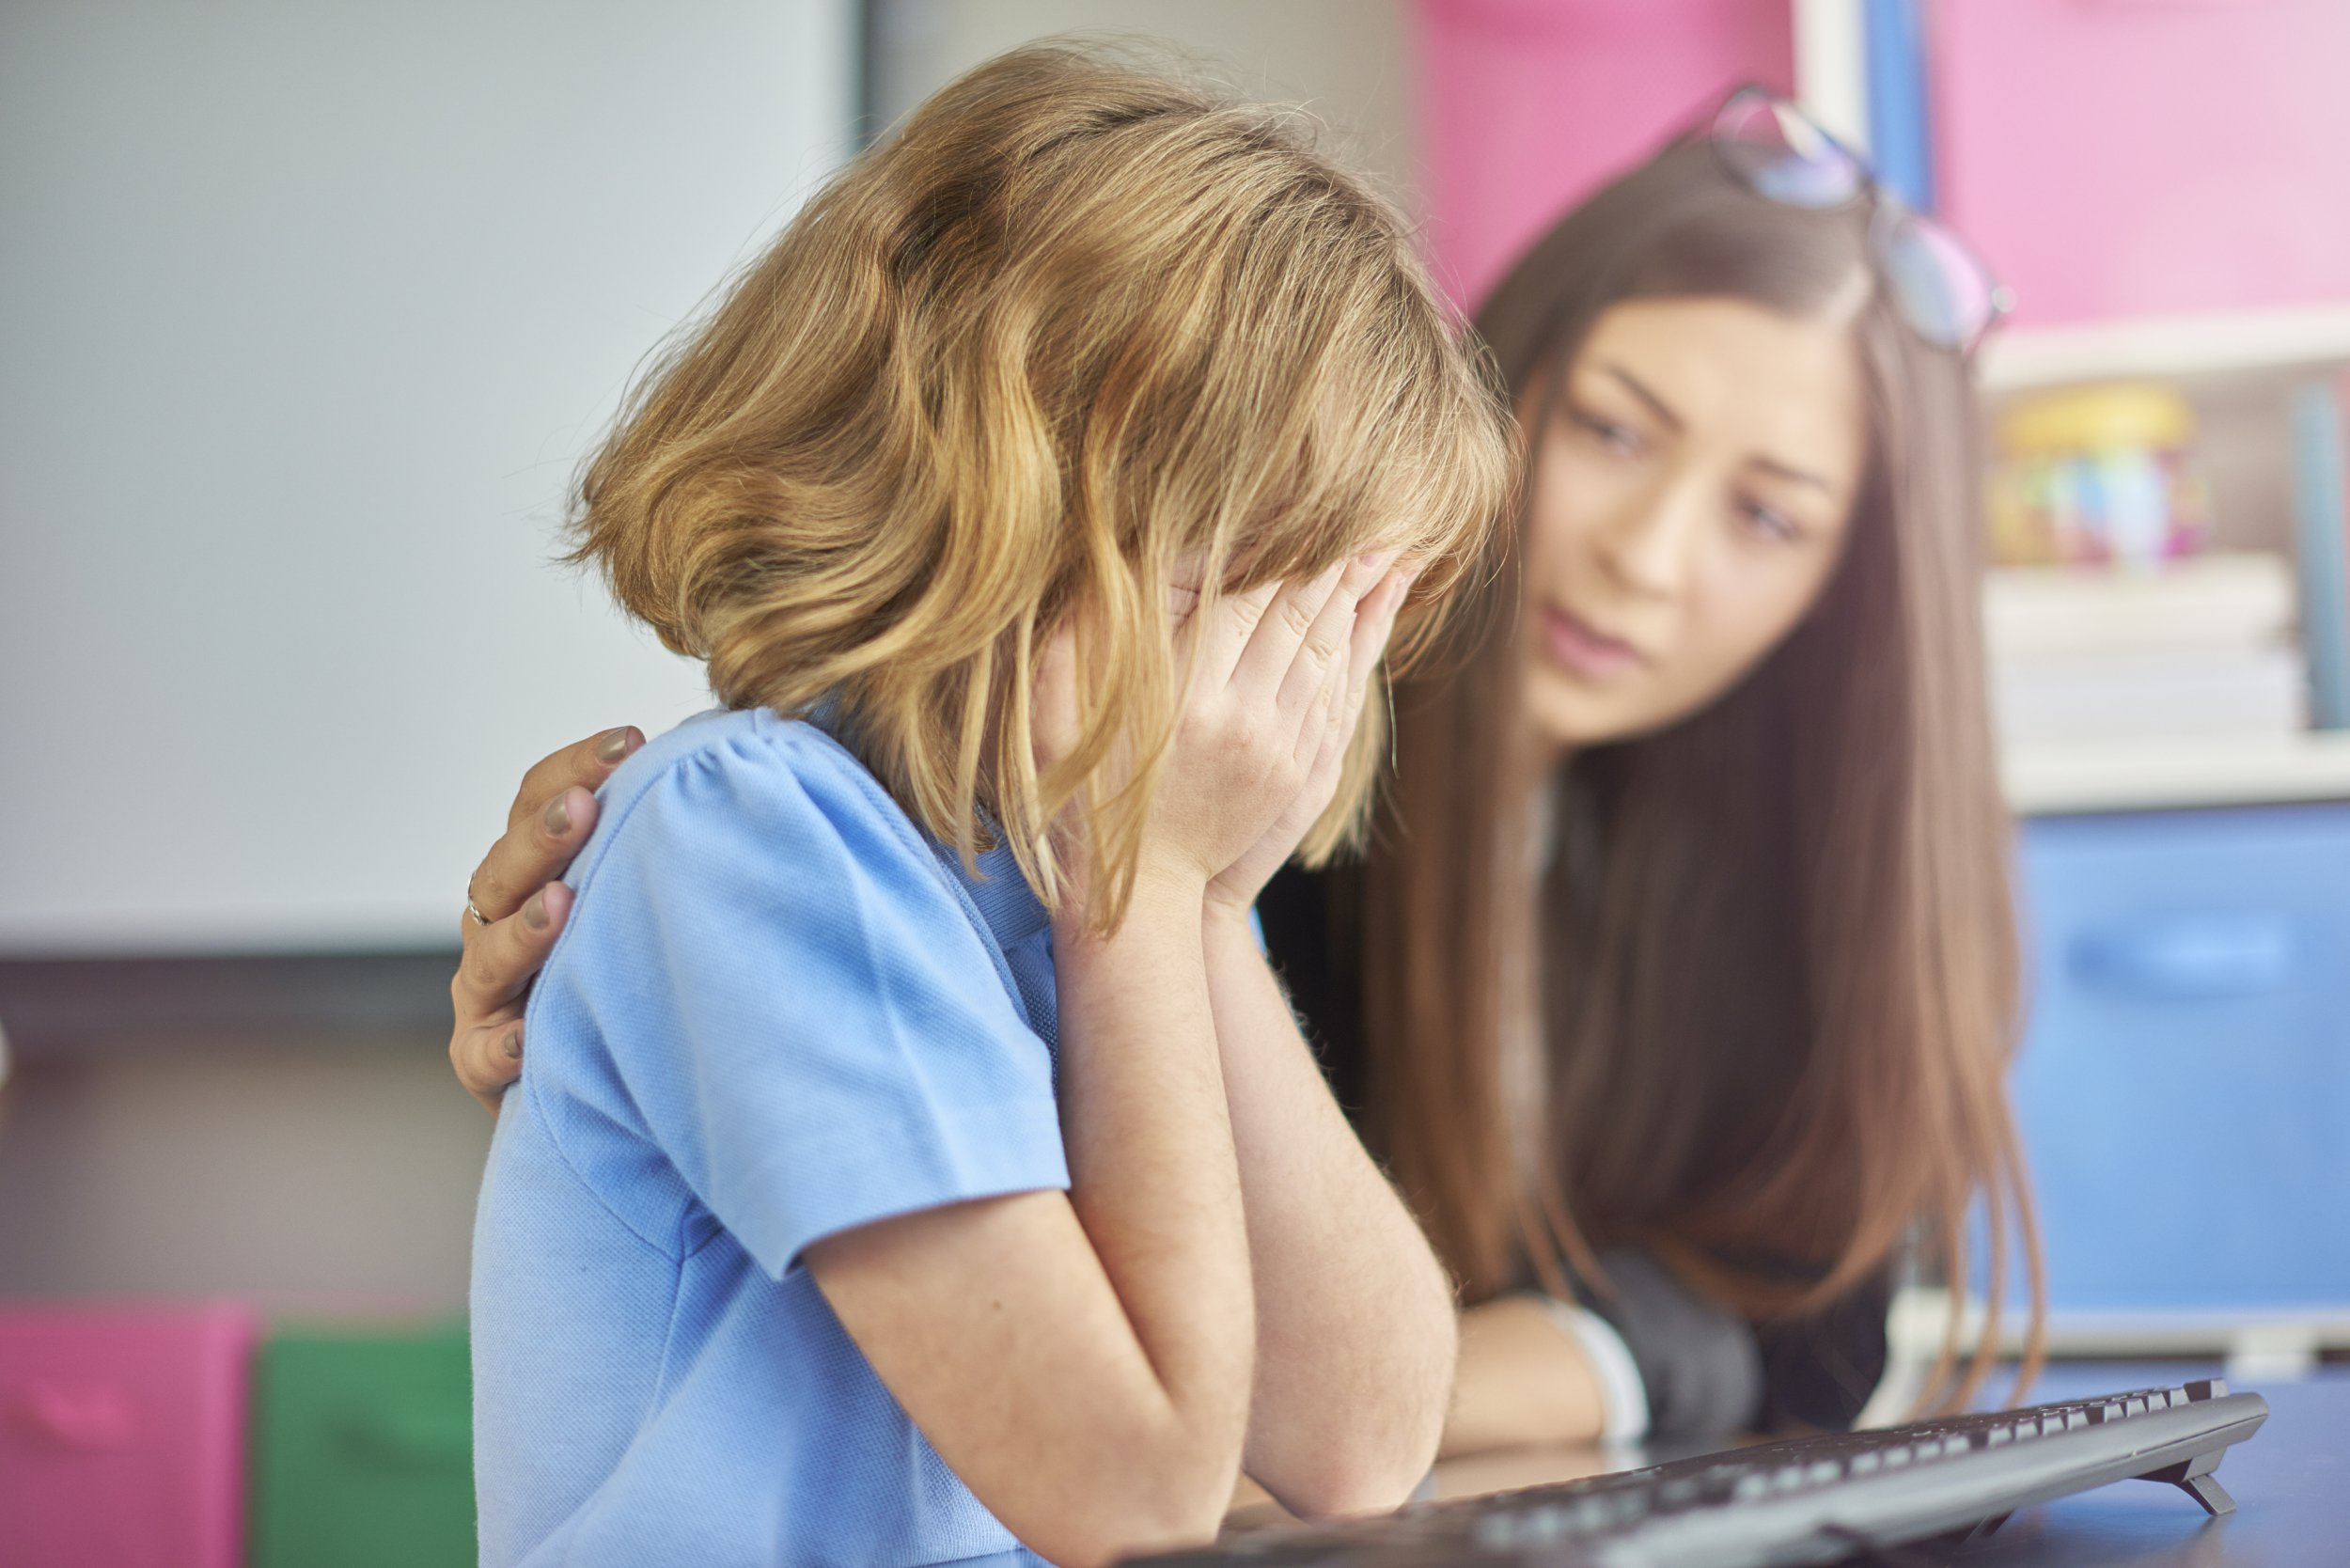 Half of children are frightened to go back to school because of bullying